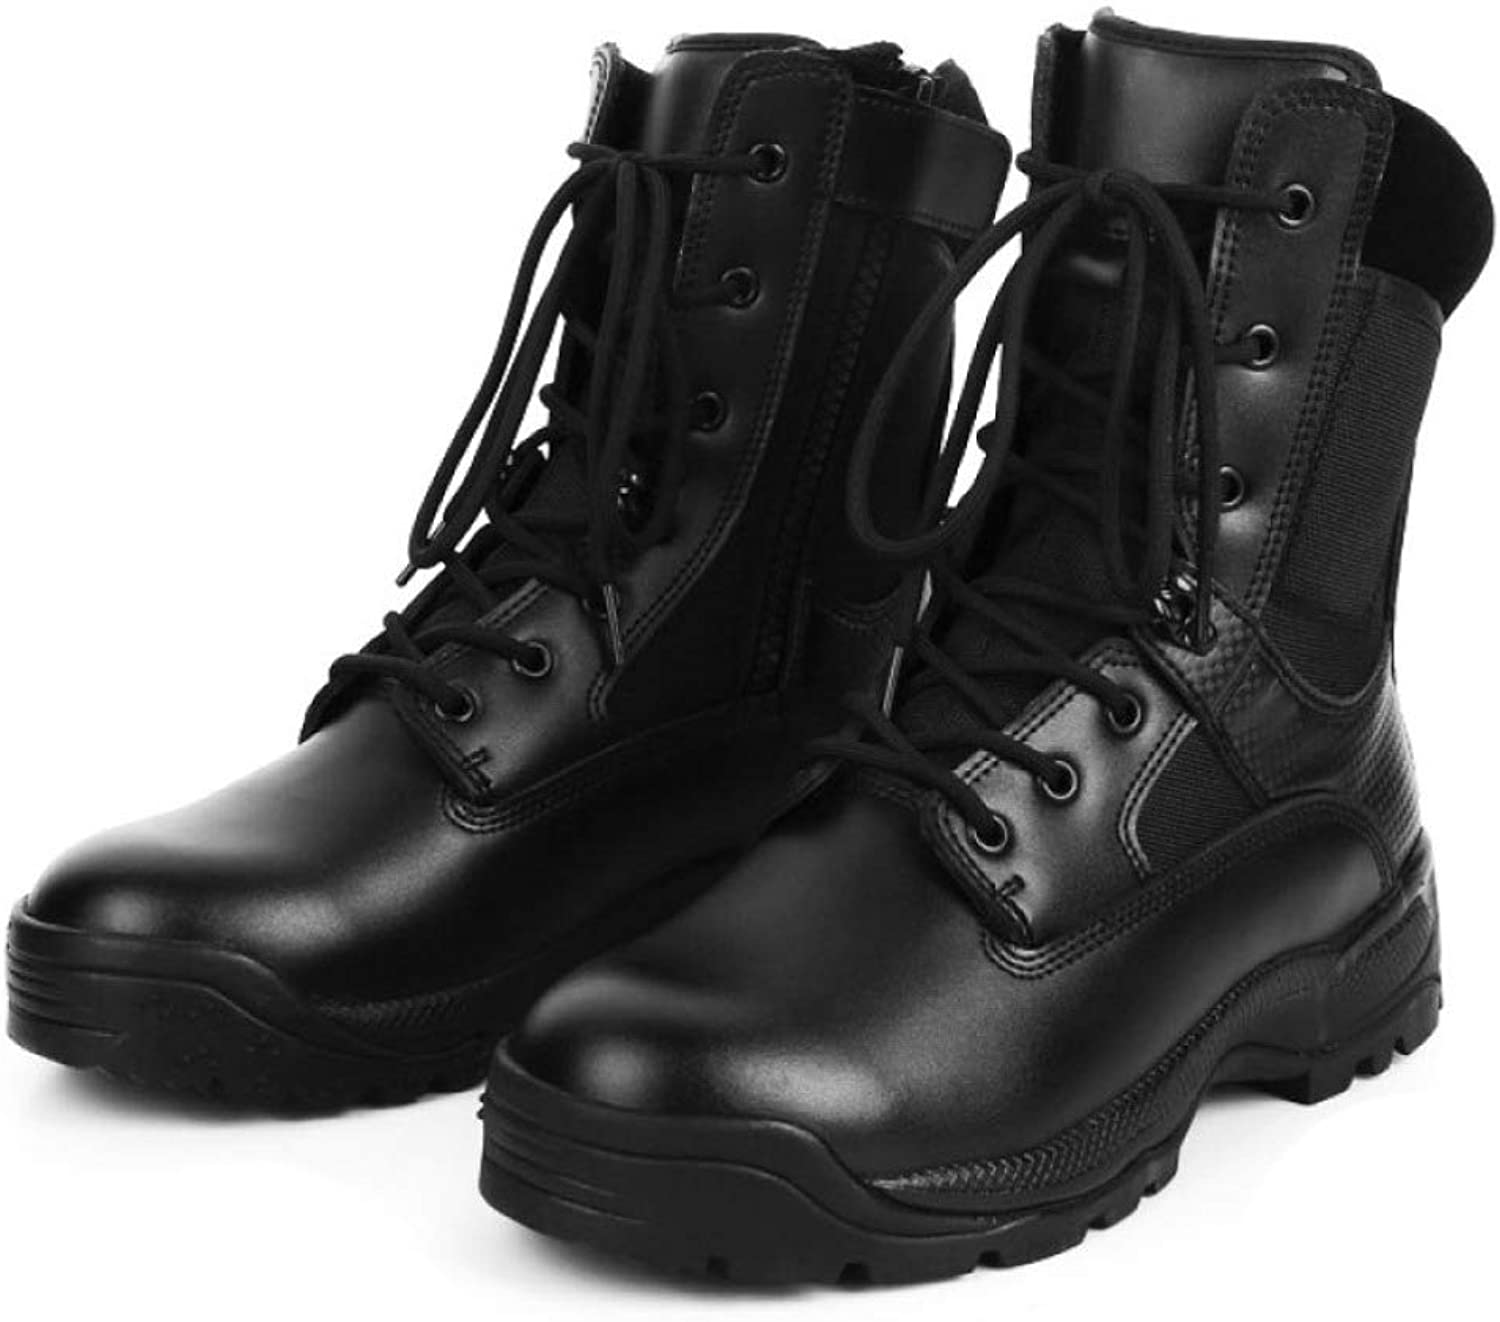 DSFGHE Boots Men's Military Tactical Work Boots Breathable Waterproof Outdoor Hiking Boots